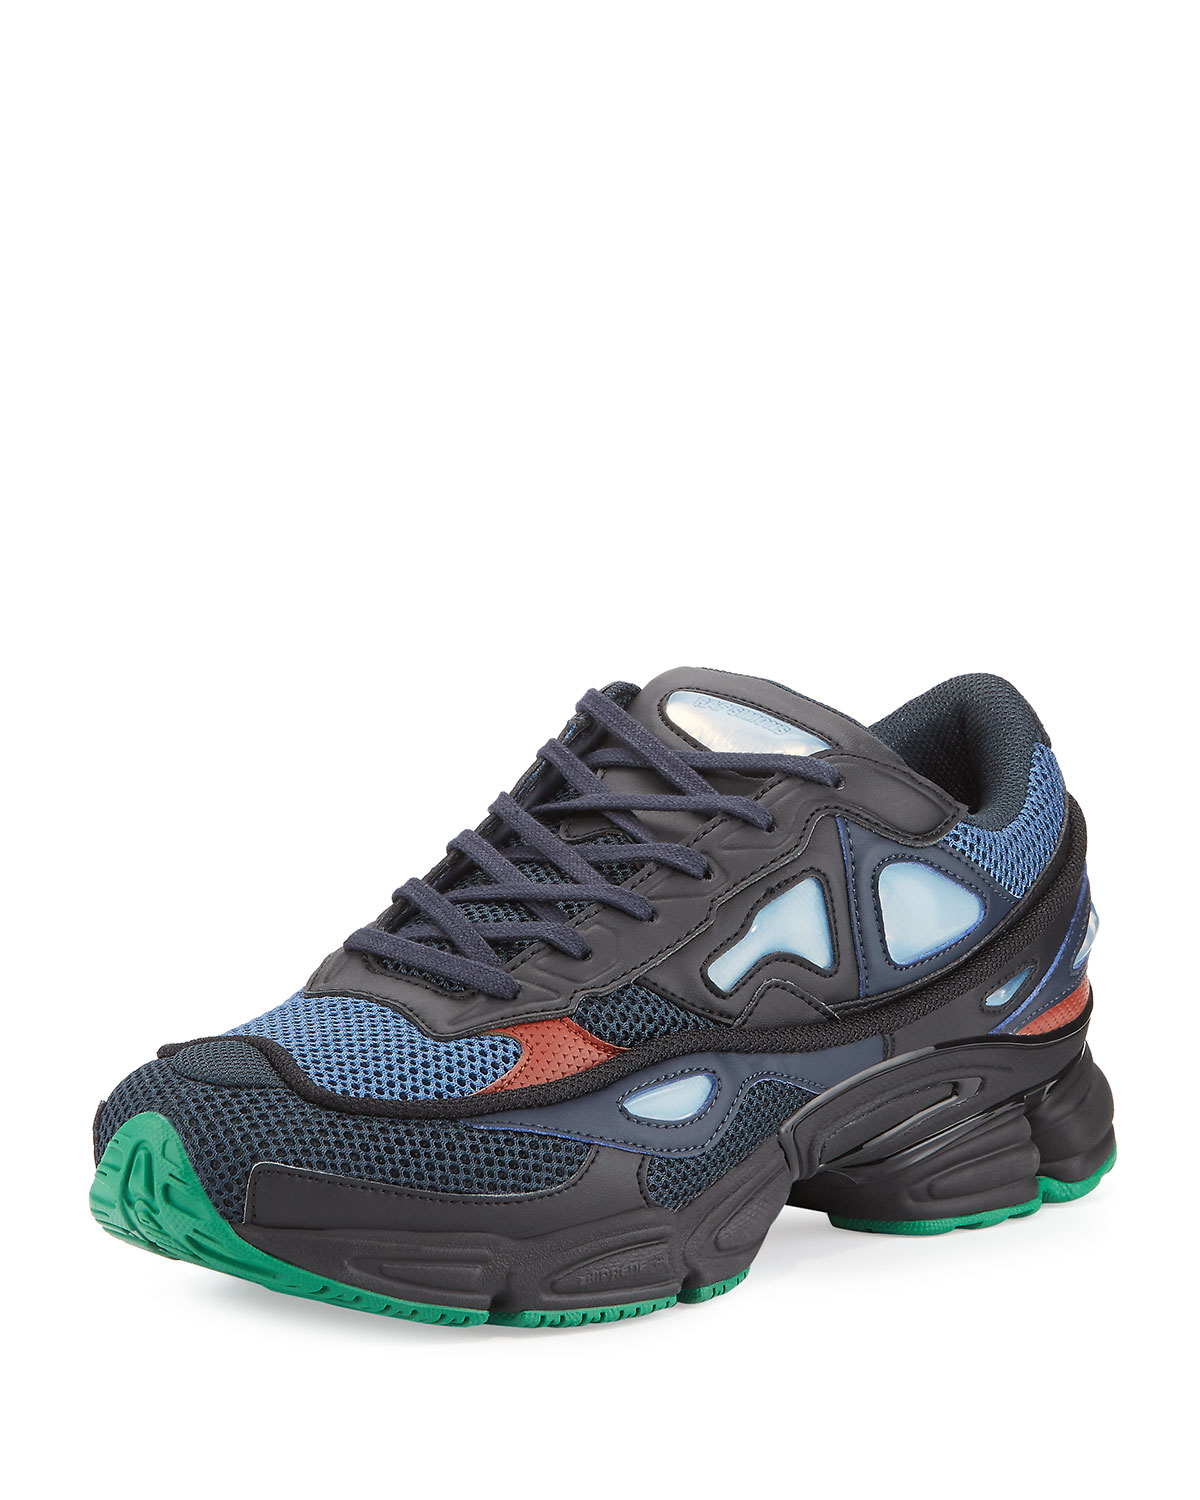 9e186a1a0a3 adidas by Raf Simons Men s Ozweego 2 Trainer Sneaker